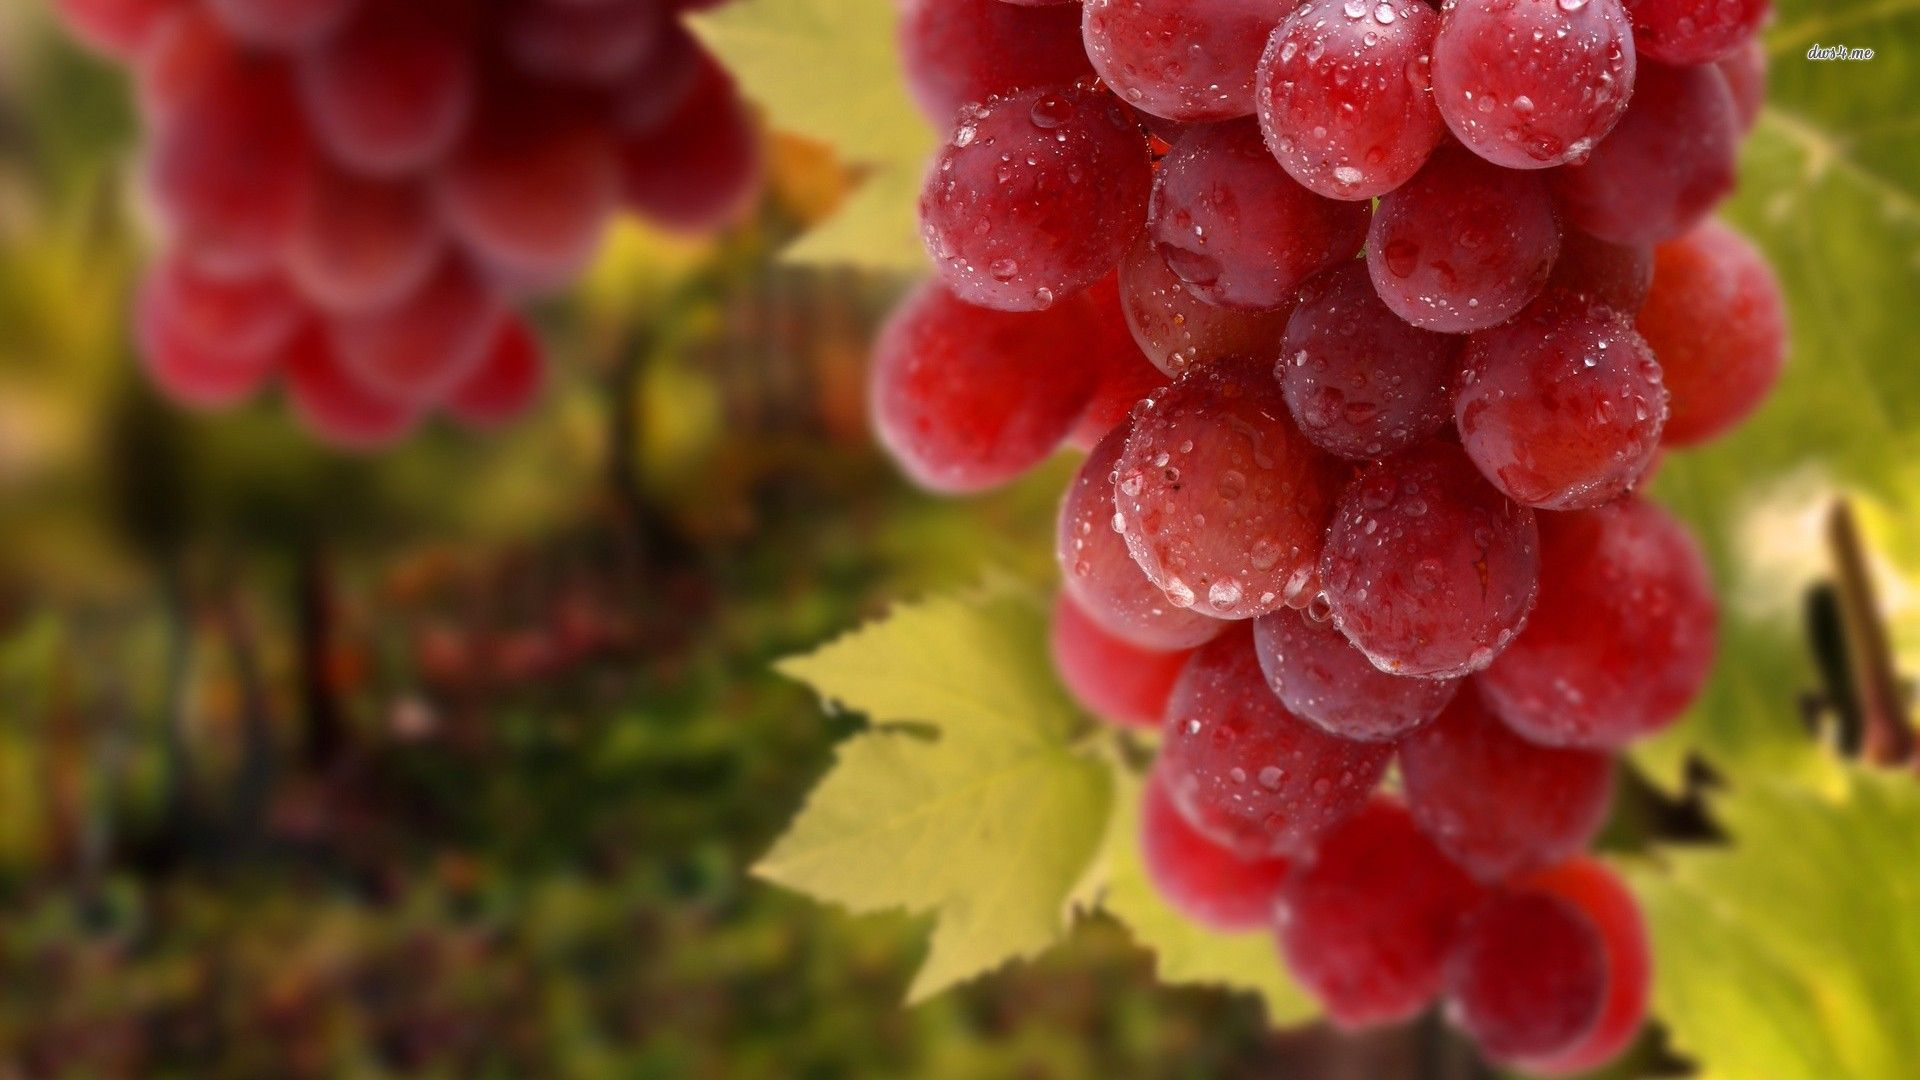 Grapes Hd Desktop Background Wallpapers Hd Free 522119 Grapes Grape Wallpaper Red Grapes